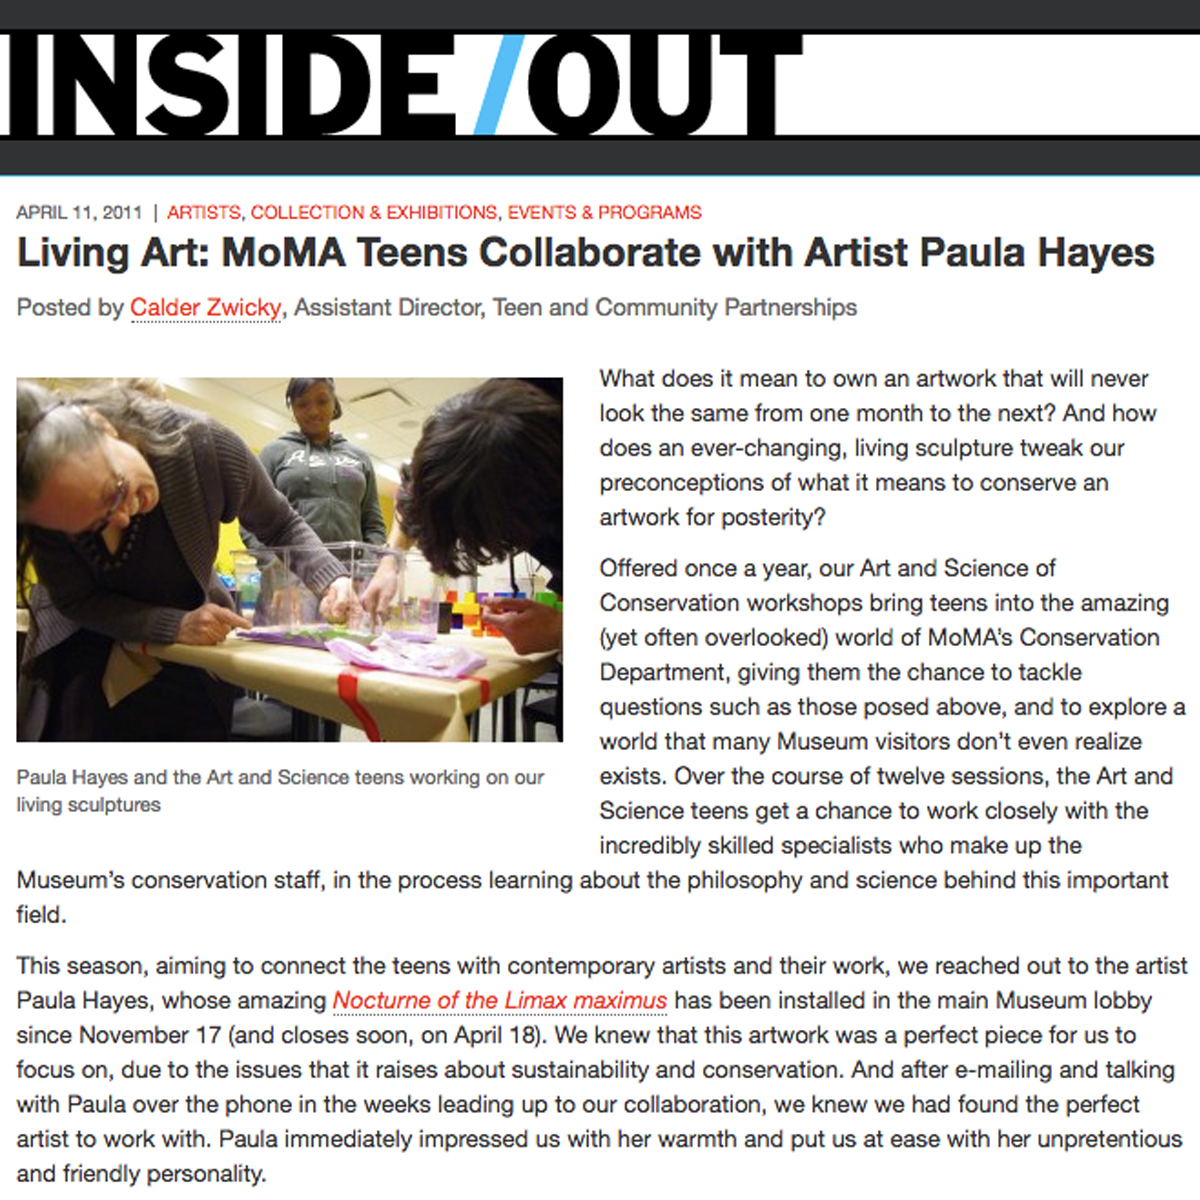 Living Art: MoMA Teens Collaborate with Artist Paula Hayes